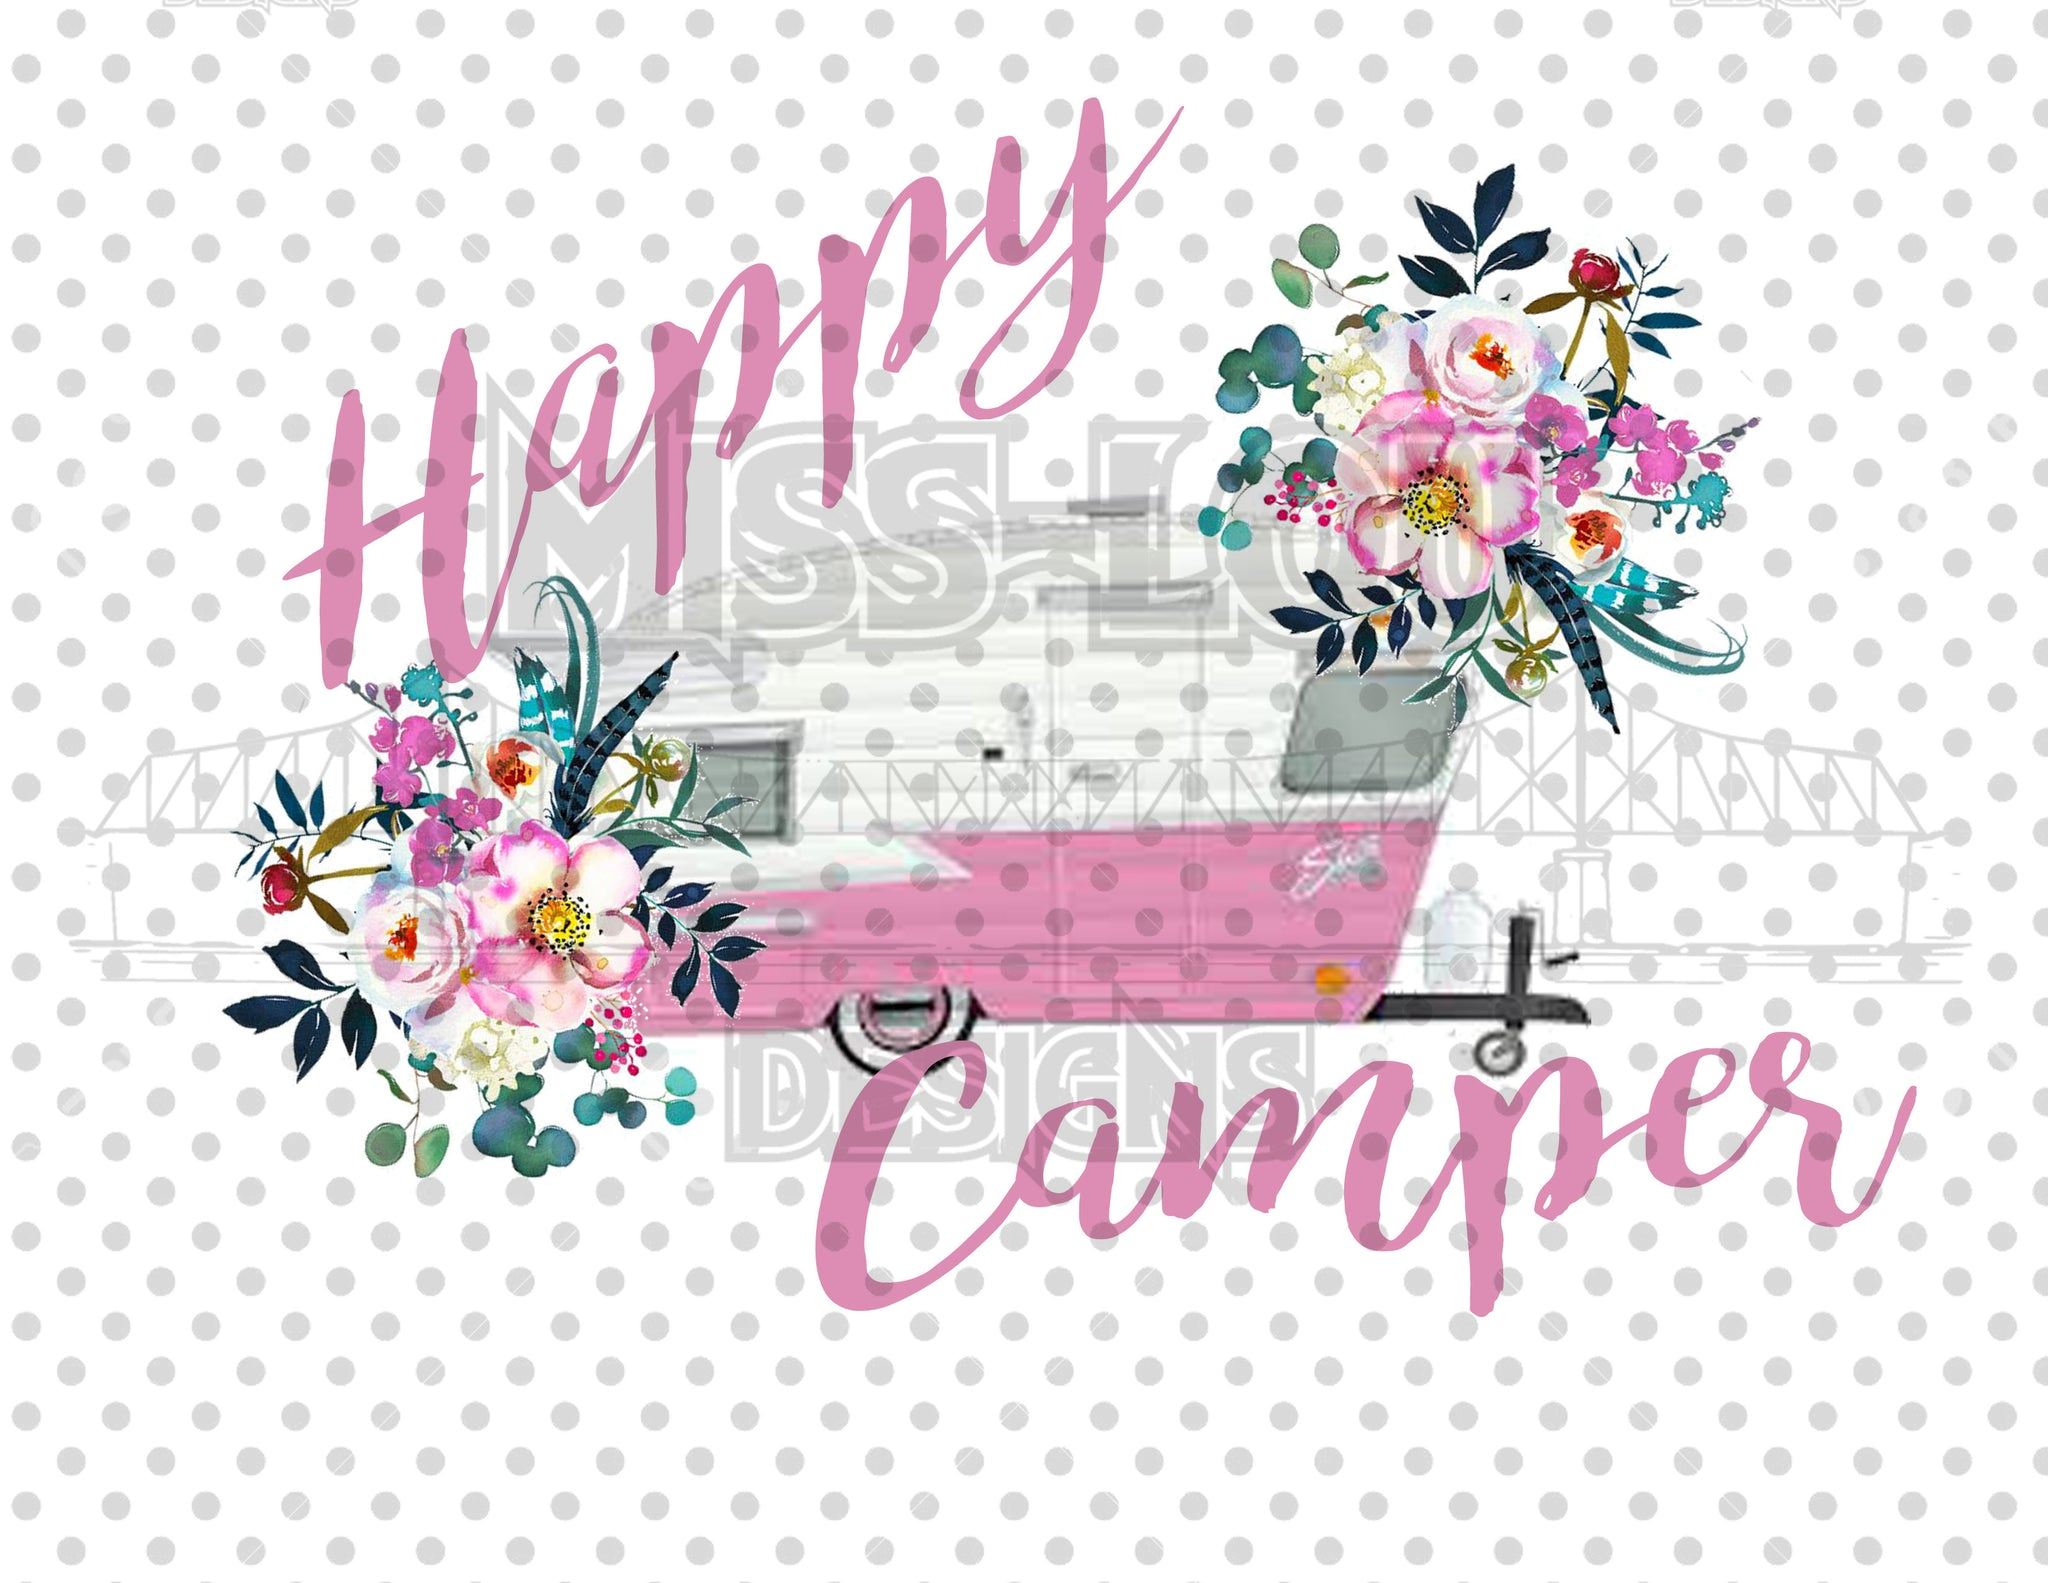 Happy Camper Pink Digital Download